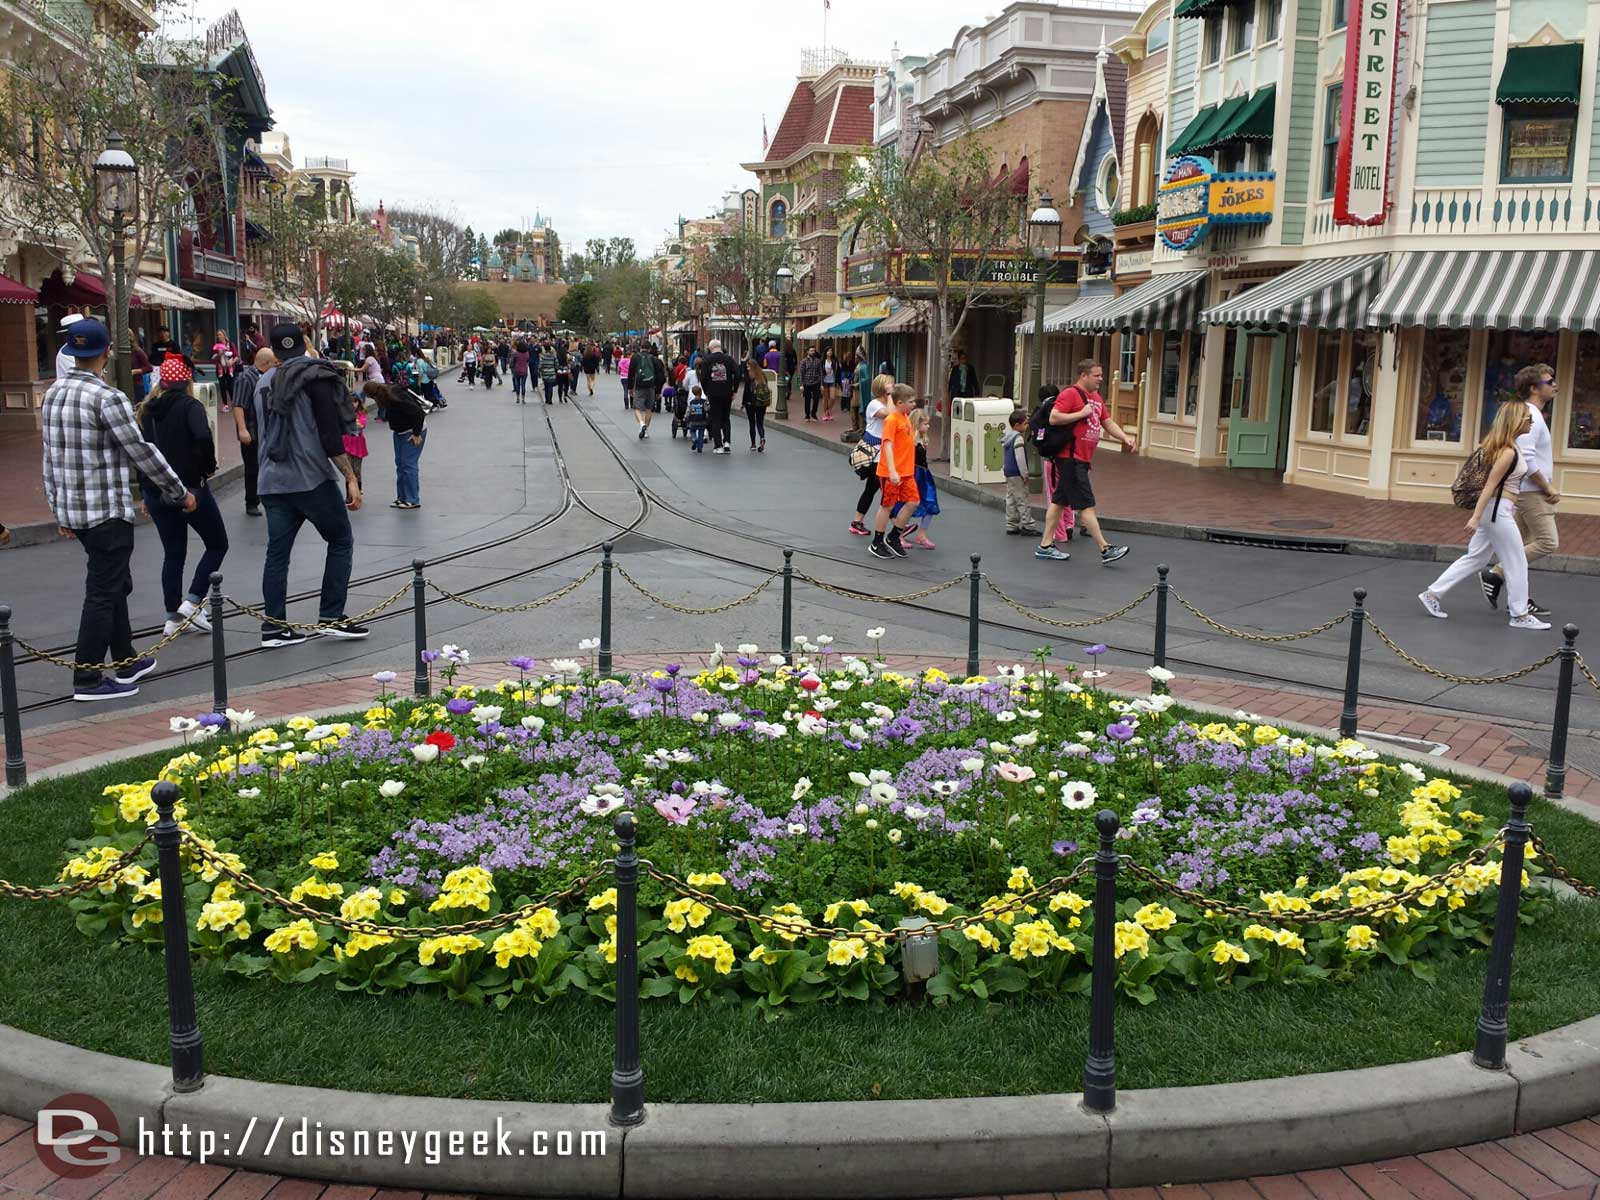 Main Street USA – A cloudy afternoon at #Disneyland today